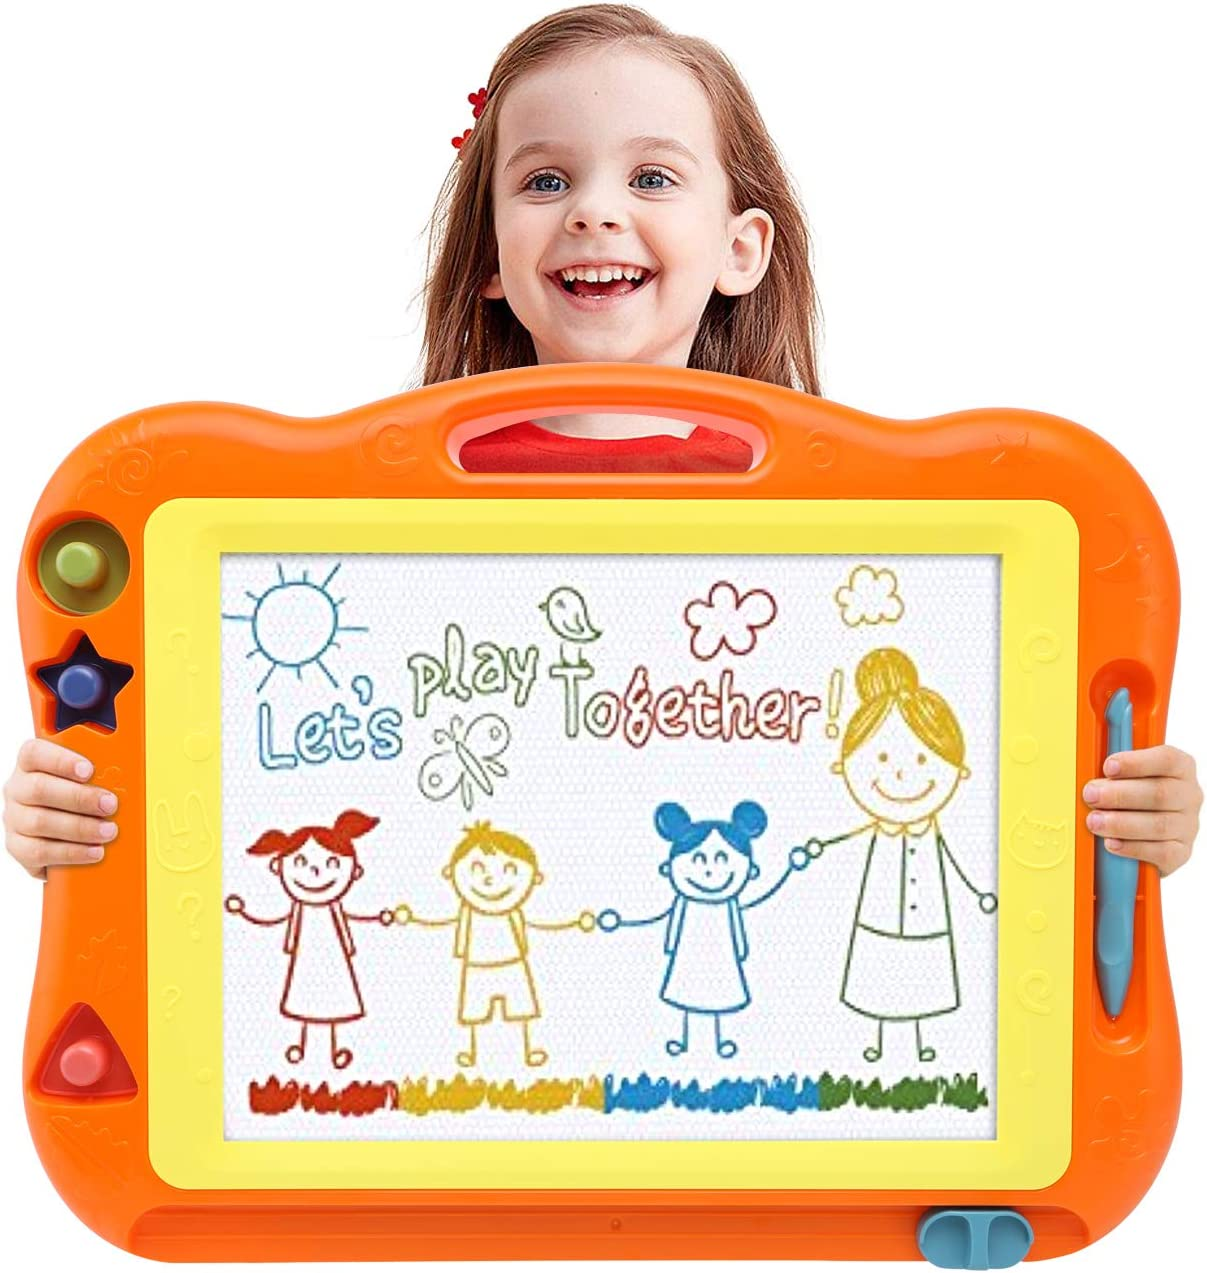 Magnetic Drawing Board Toddler Toys for Boys Girls, 17 Inch Magna Erasable Doodle board for Kids A Colorful Etch Education Sketch Doodle Pad Toddler Toys